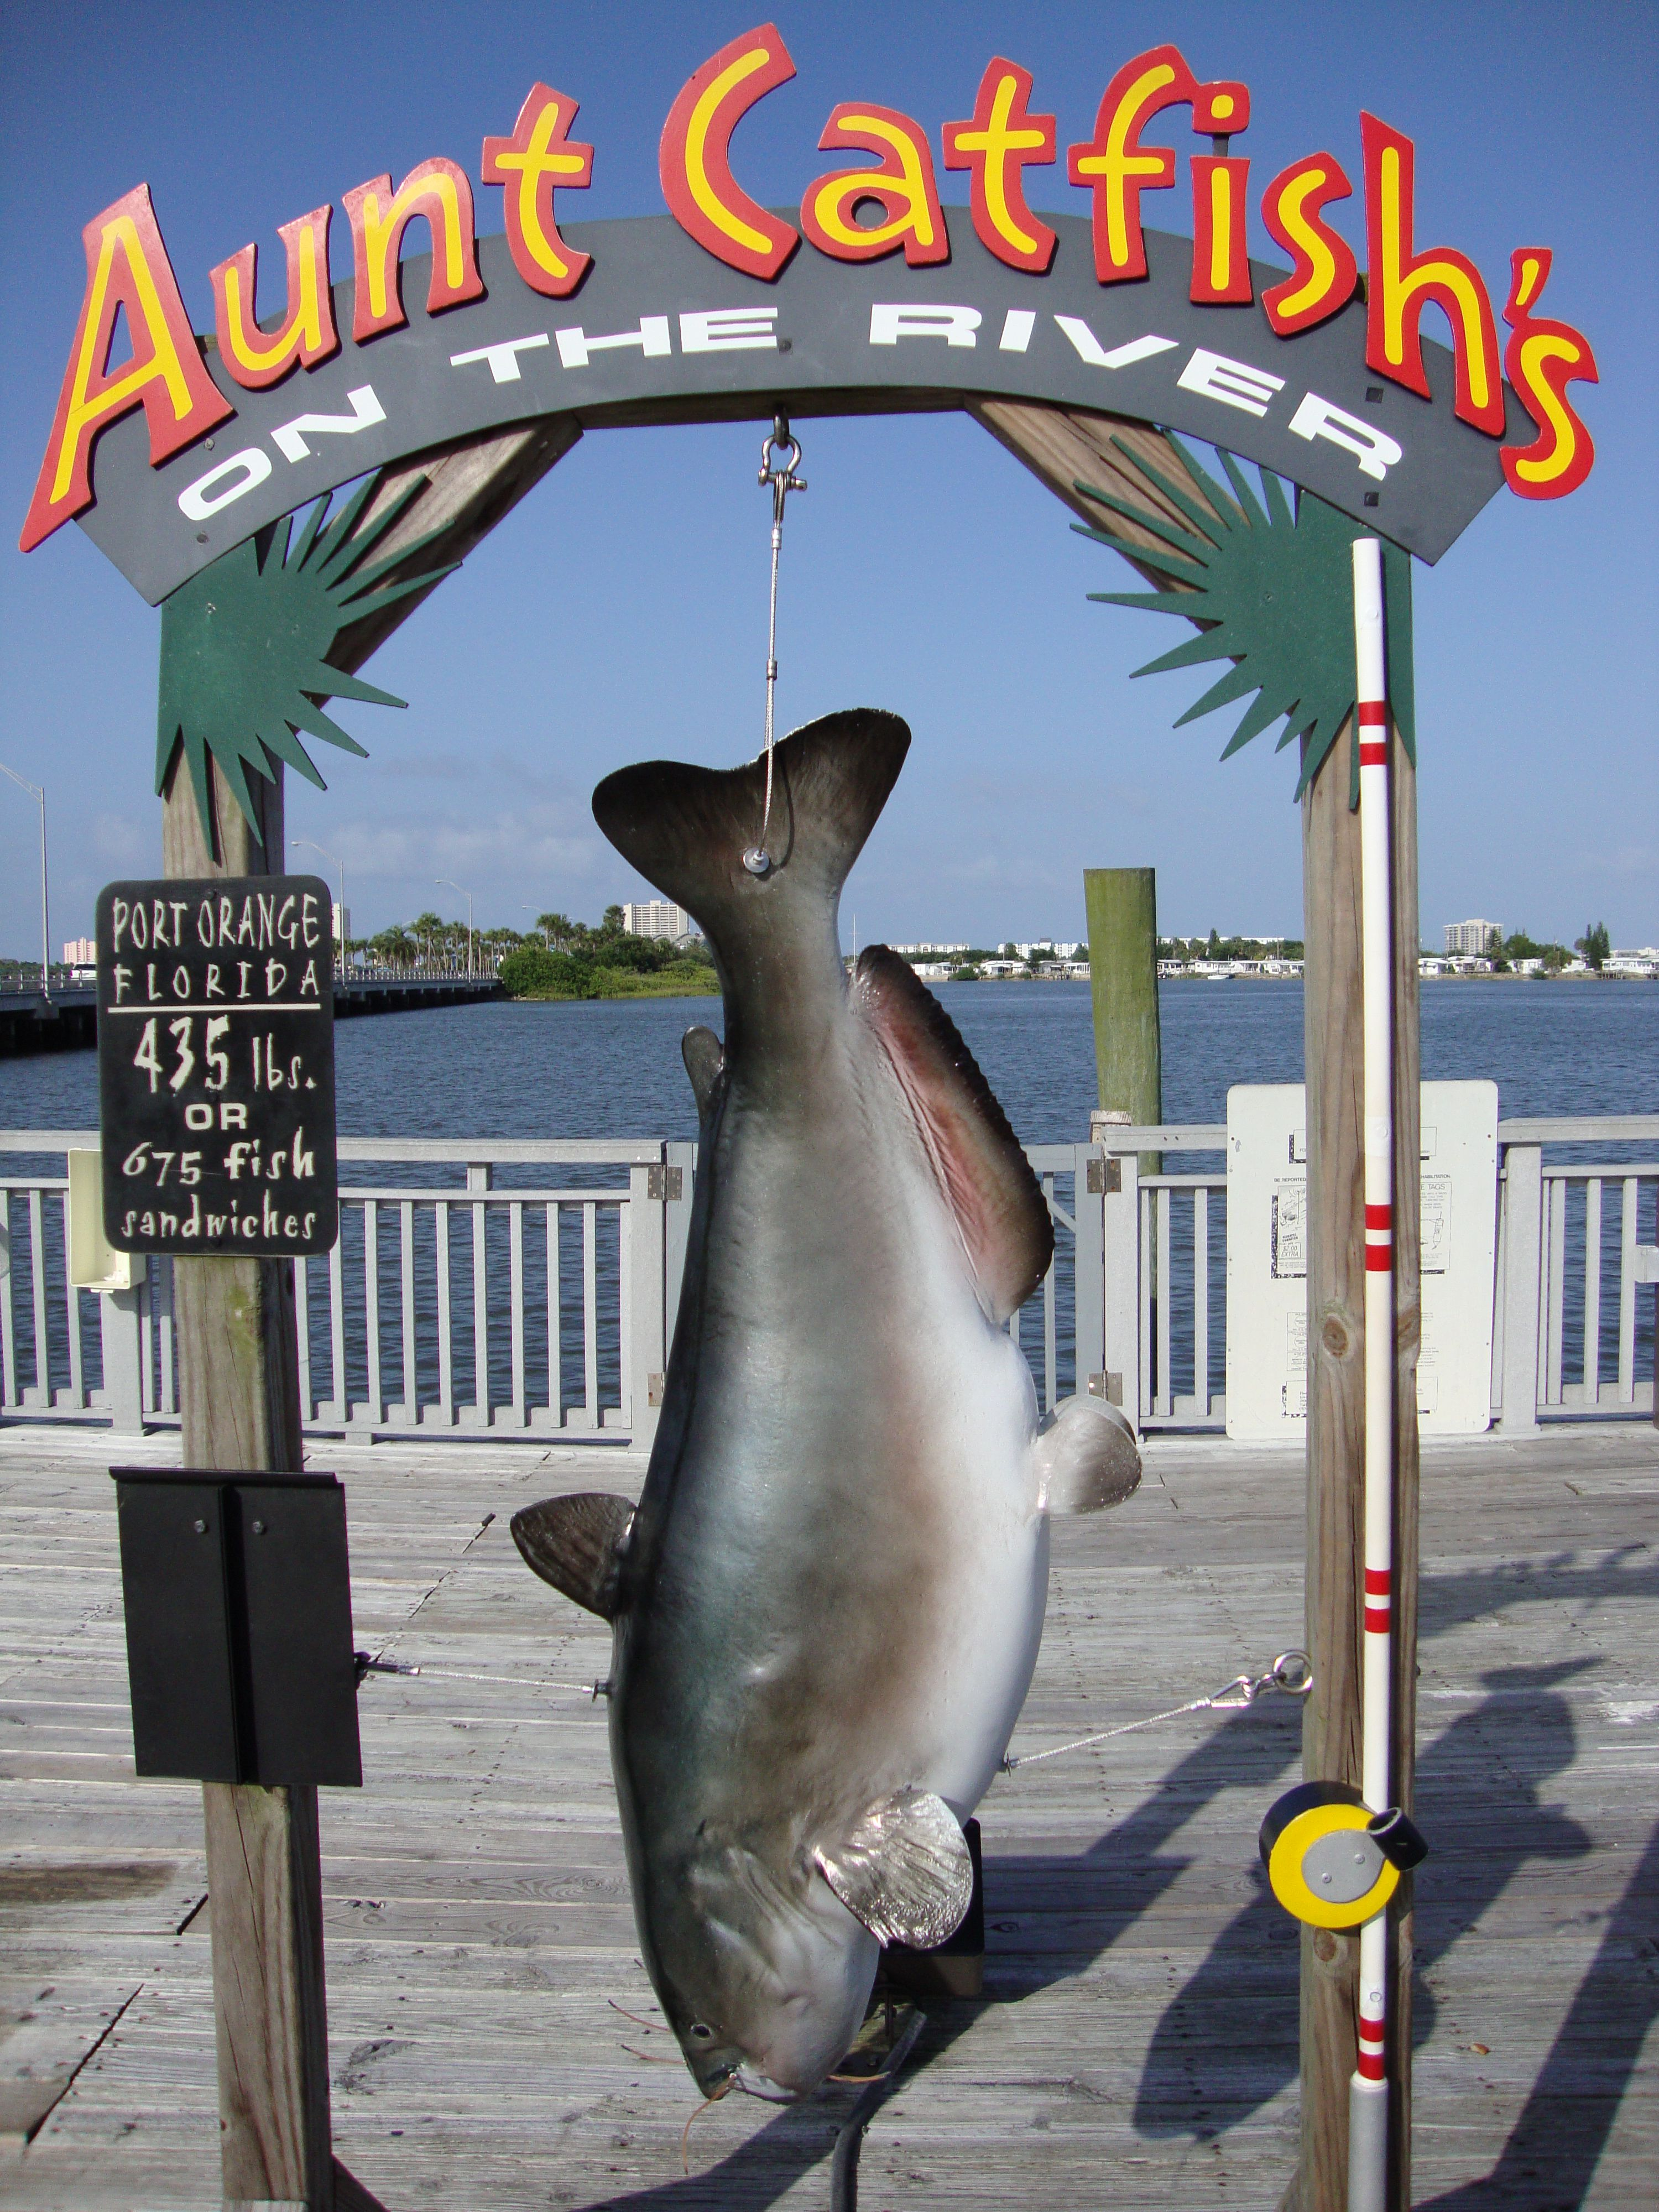 Aunt Catfish S Restaurant On The River Daytona Fl Port Oranage Bridge Most Awesome Food Oh How I Wish Was There